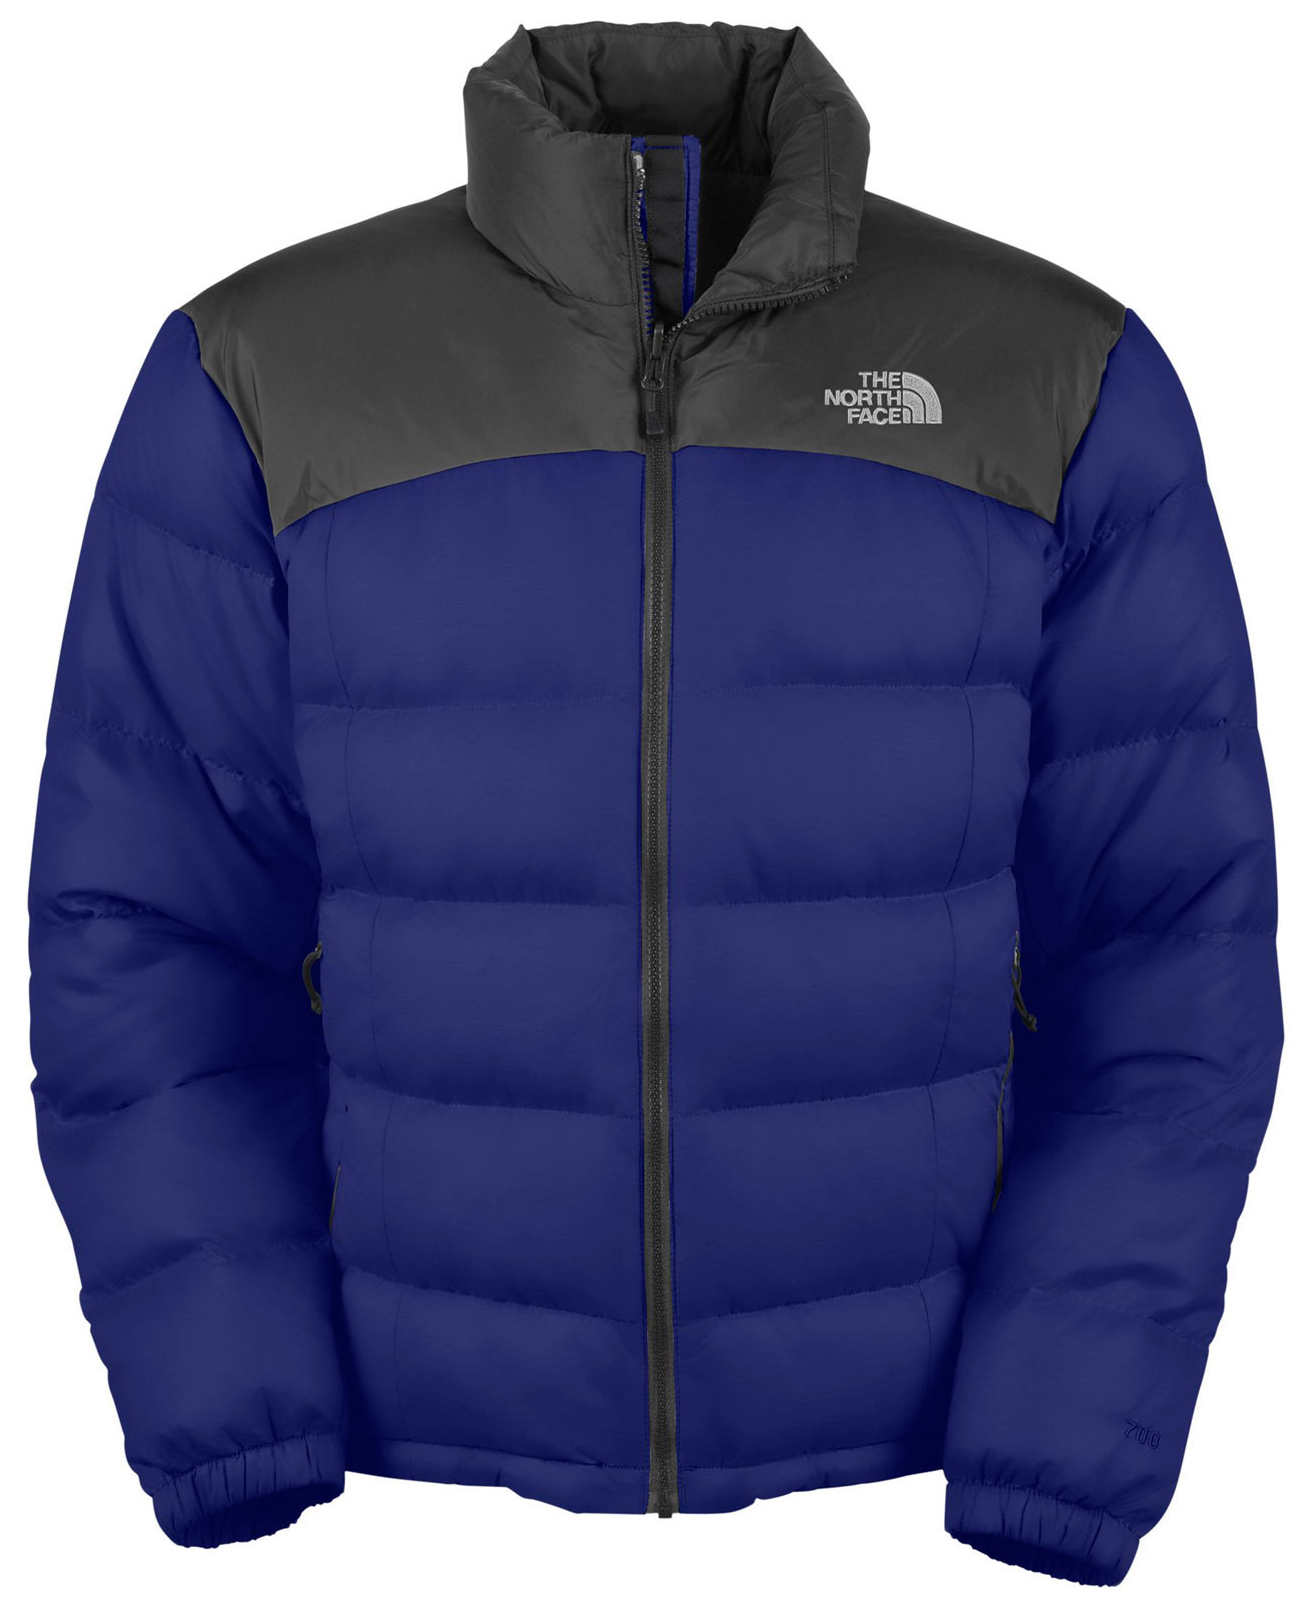 "Key Features of The North Face Nuptse 2 Jacket: Avg Weight: 690 g (24.4 oz) Center Back: 27.5"" Fabric: body: 50D 64 g/m2 (1.9 oz/yd2) mini-ripstop weave nylon abrasion: 50D 64 g/m2 (1.9 oz/yd2) plain weave nylon with DWR insulation: 700 fill goose down The North Face® classic, high loft down jacket that delivers plush warmth in harsh cold. Standard fit Zip-in compatible Taffeta emergency hood Double-layer taffeta on shoulders Stows in hand pocket Two hand pockets Elastic cuff Hem cinch-cord - $164.95"